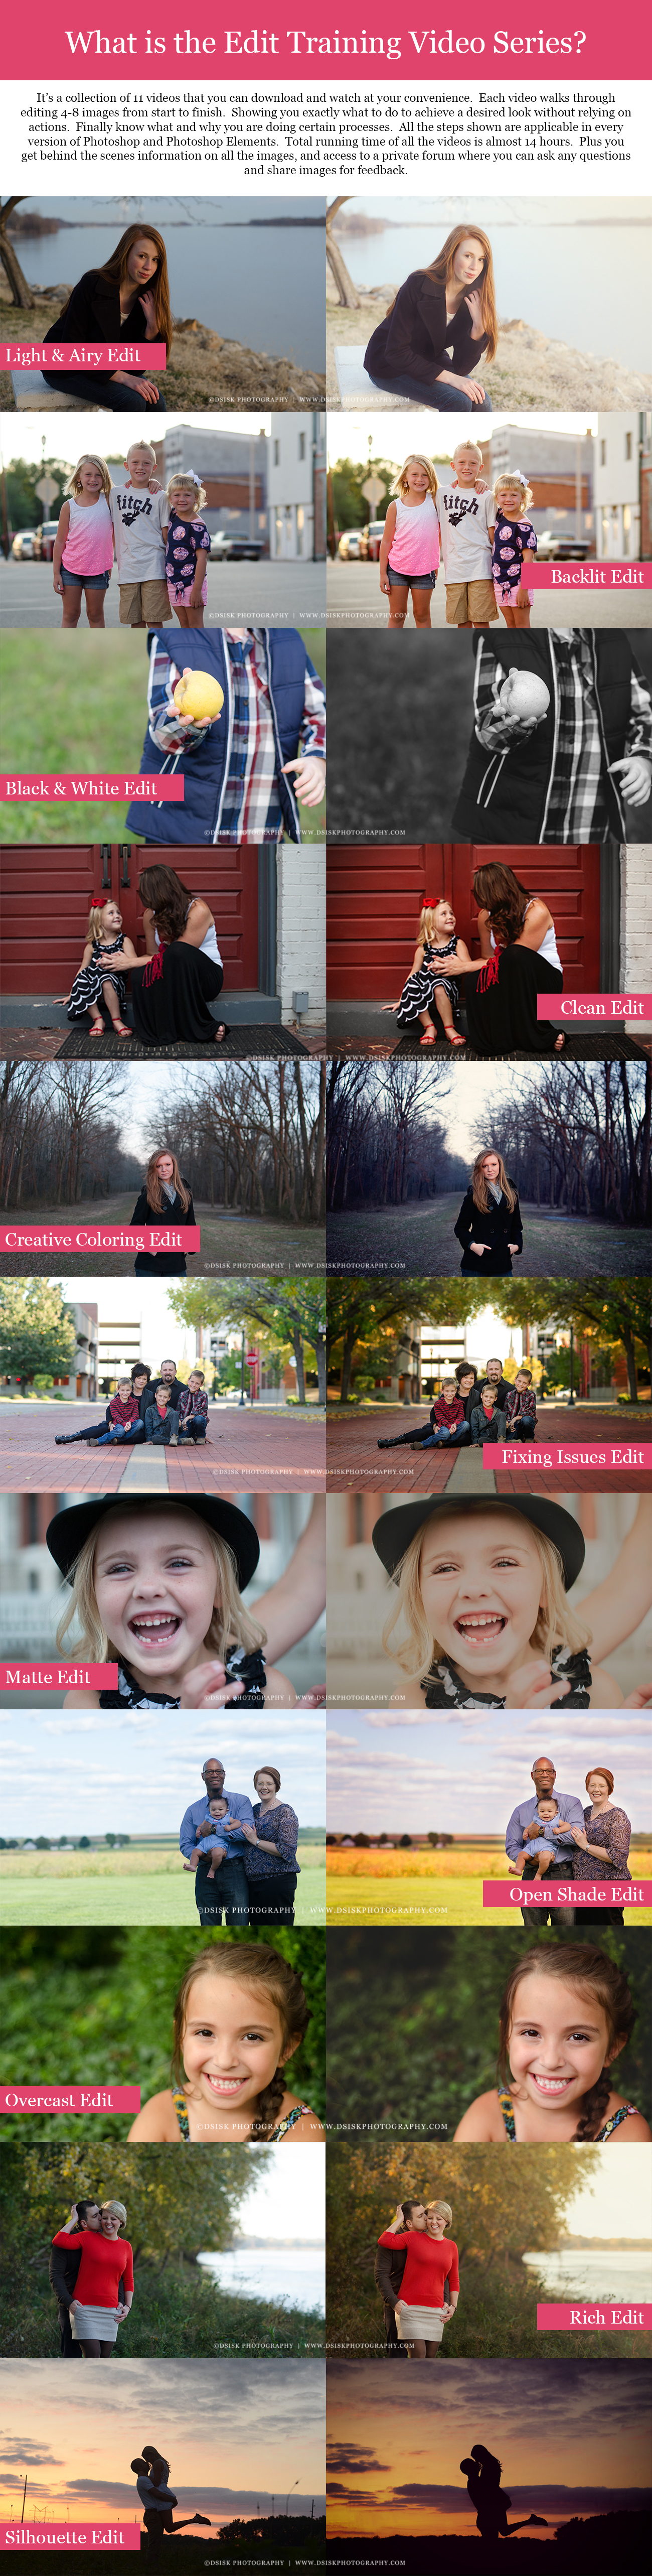 Learn How To Edit In Photoshop And Elements